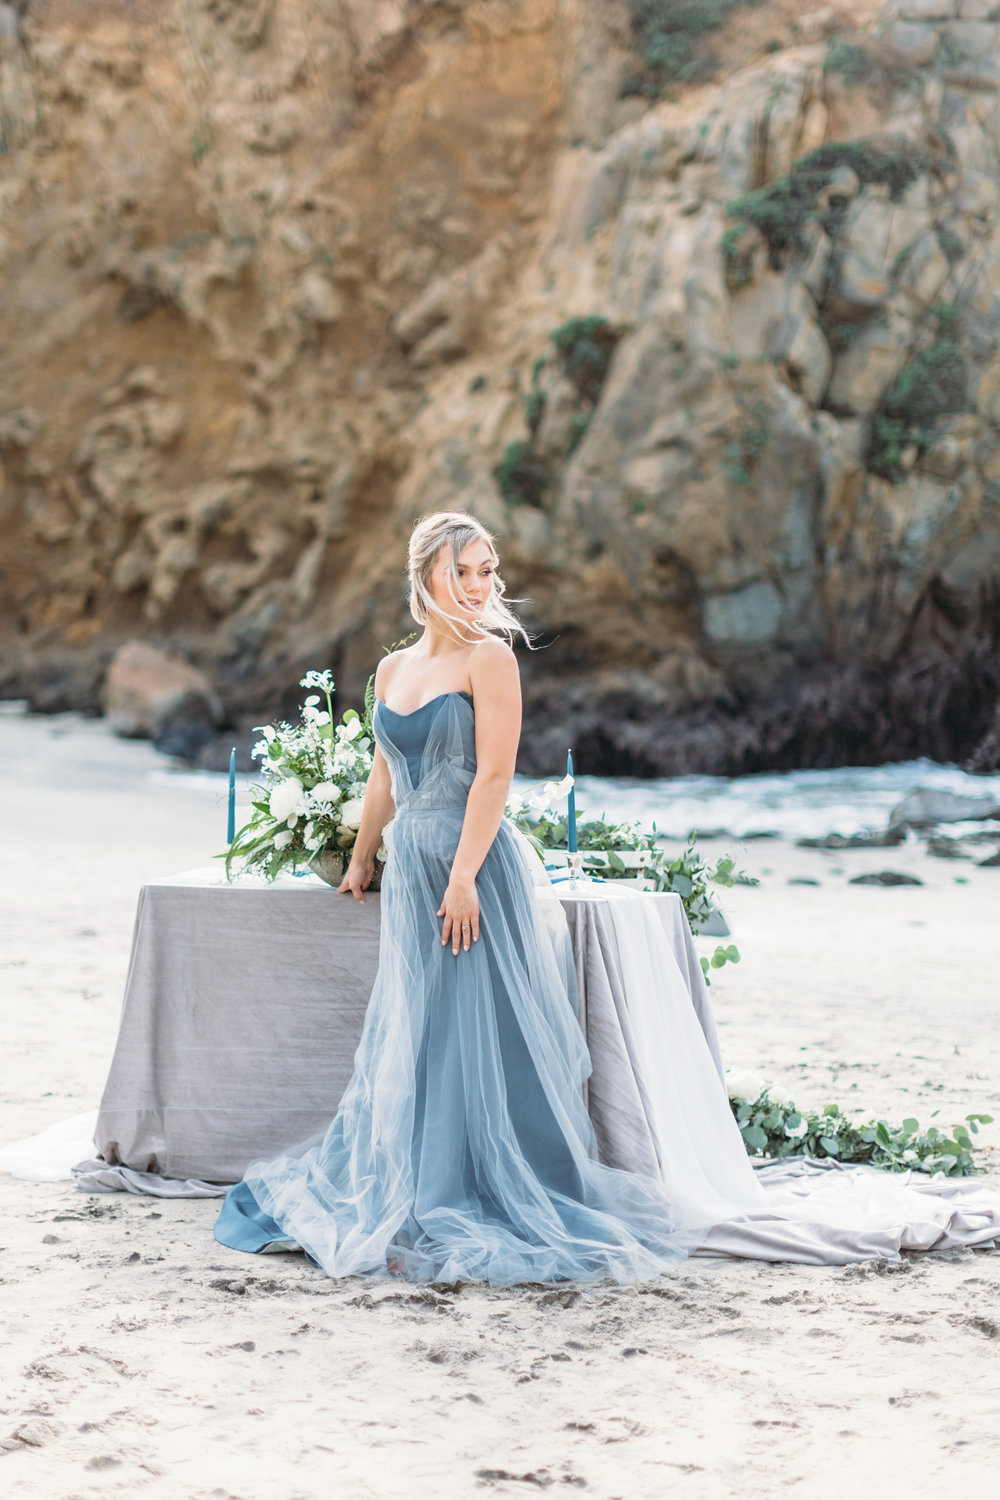 big-sur-wedding-tara-latour-11.jpg